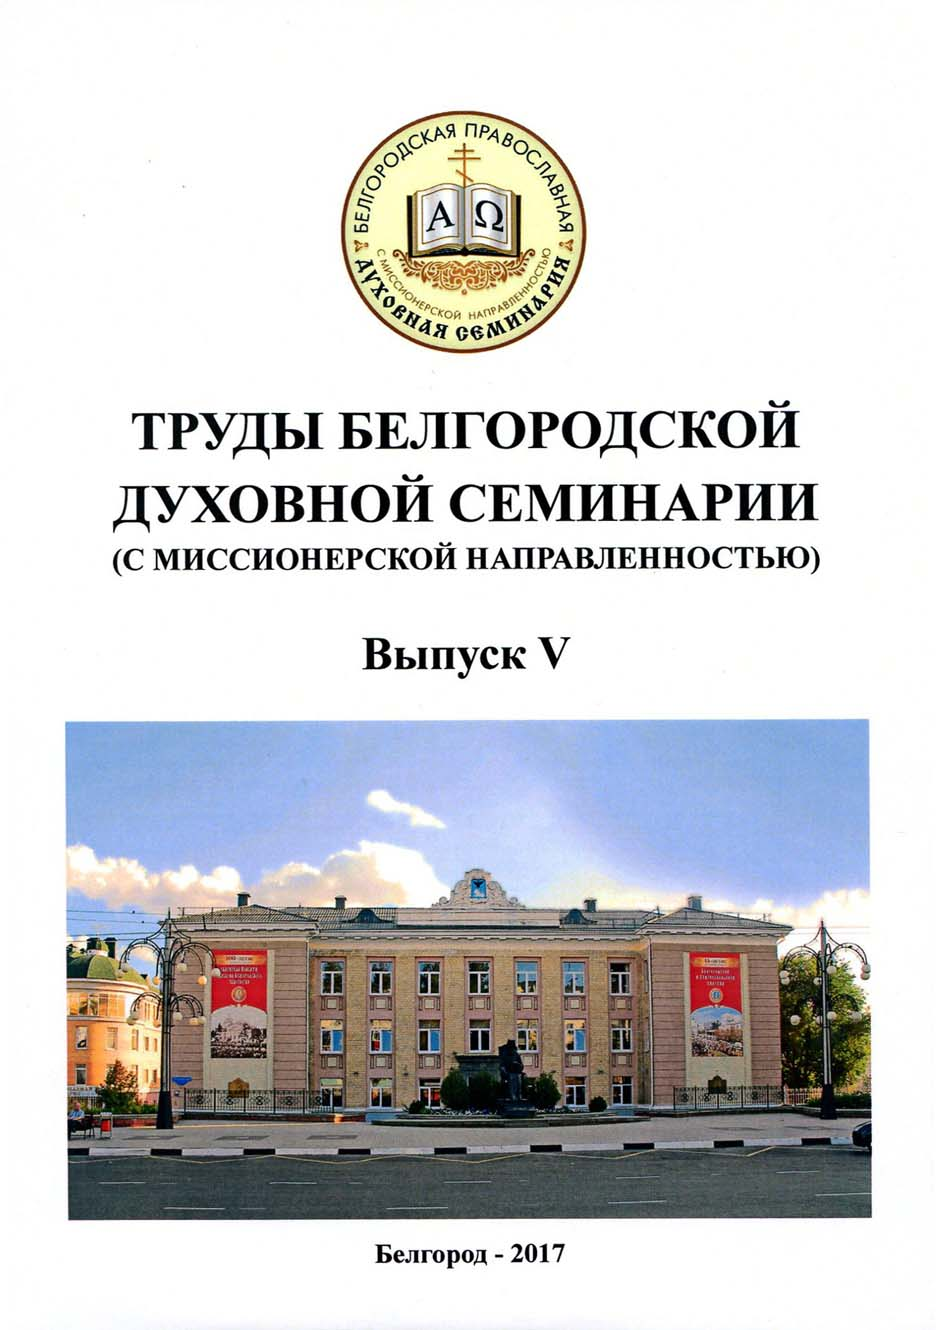 http://www.bel-seminaria.ru/sites/default/files/yubileynyy_0.jpg